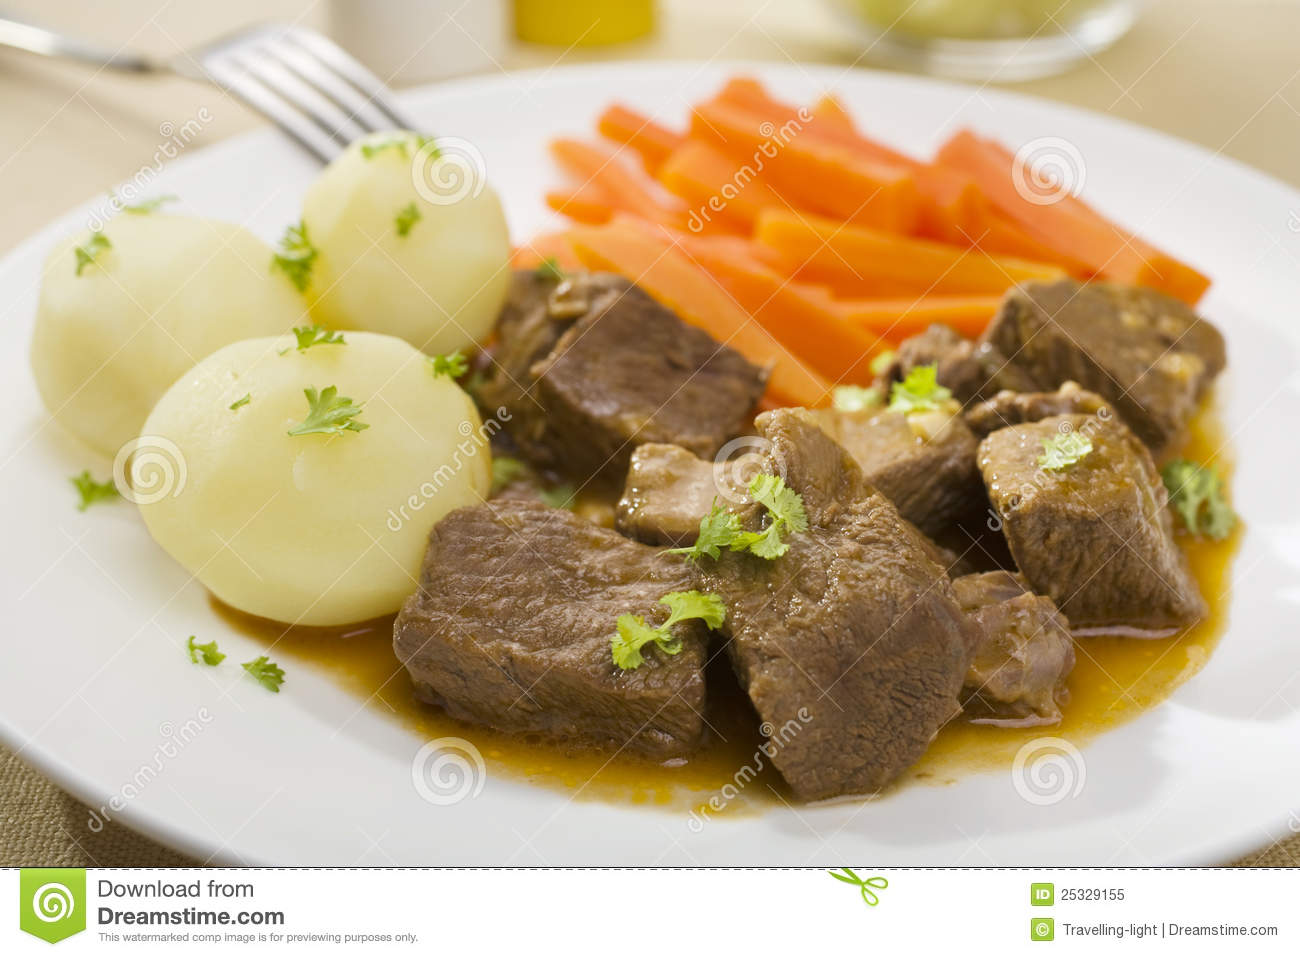 Beef Stew With Potatoes And Carrots Royalty Free Stock Photo - Image ...